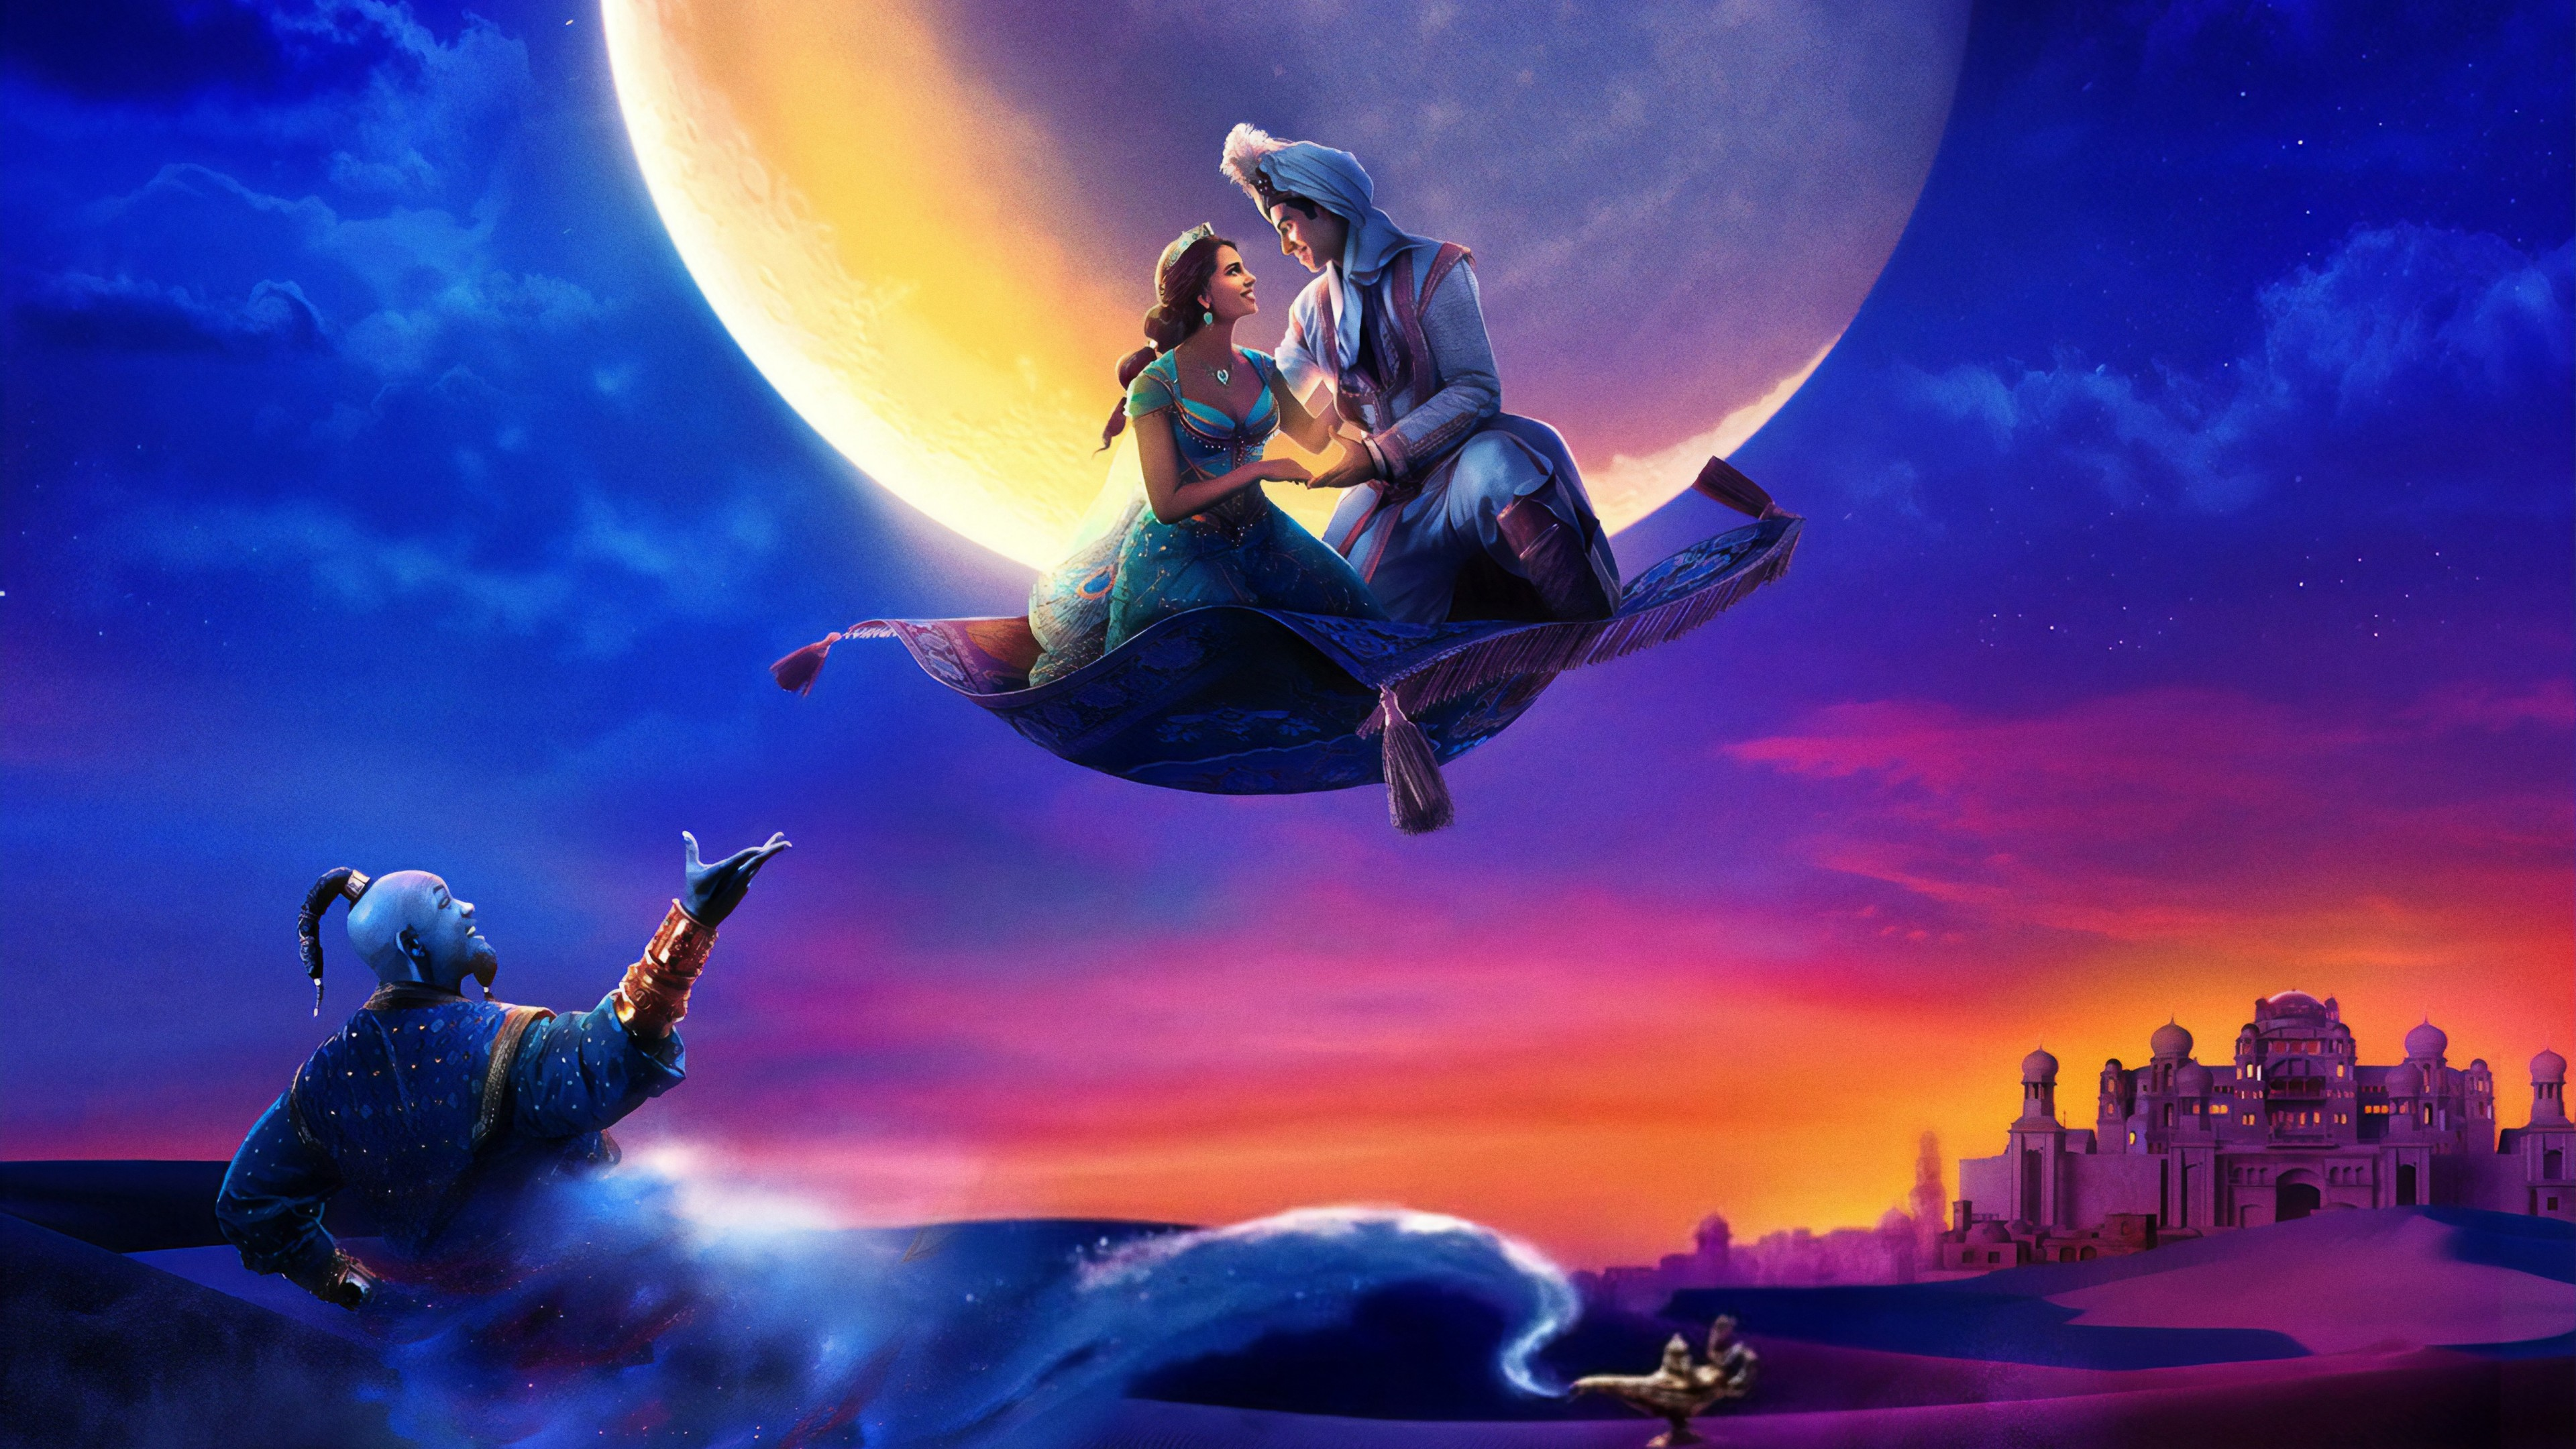 Aladdin 2019 Wallpaper 4K